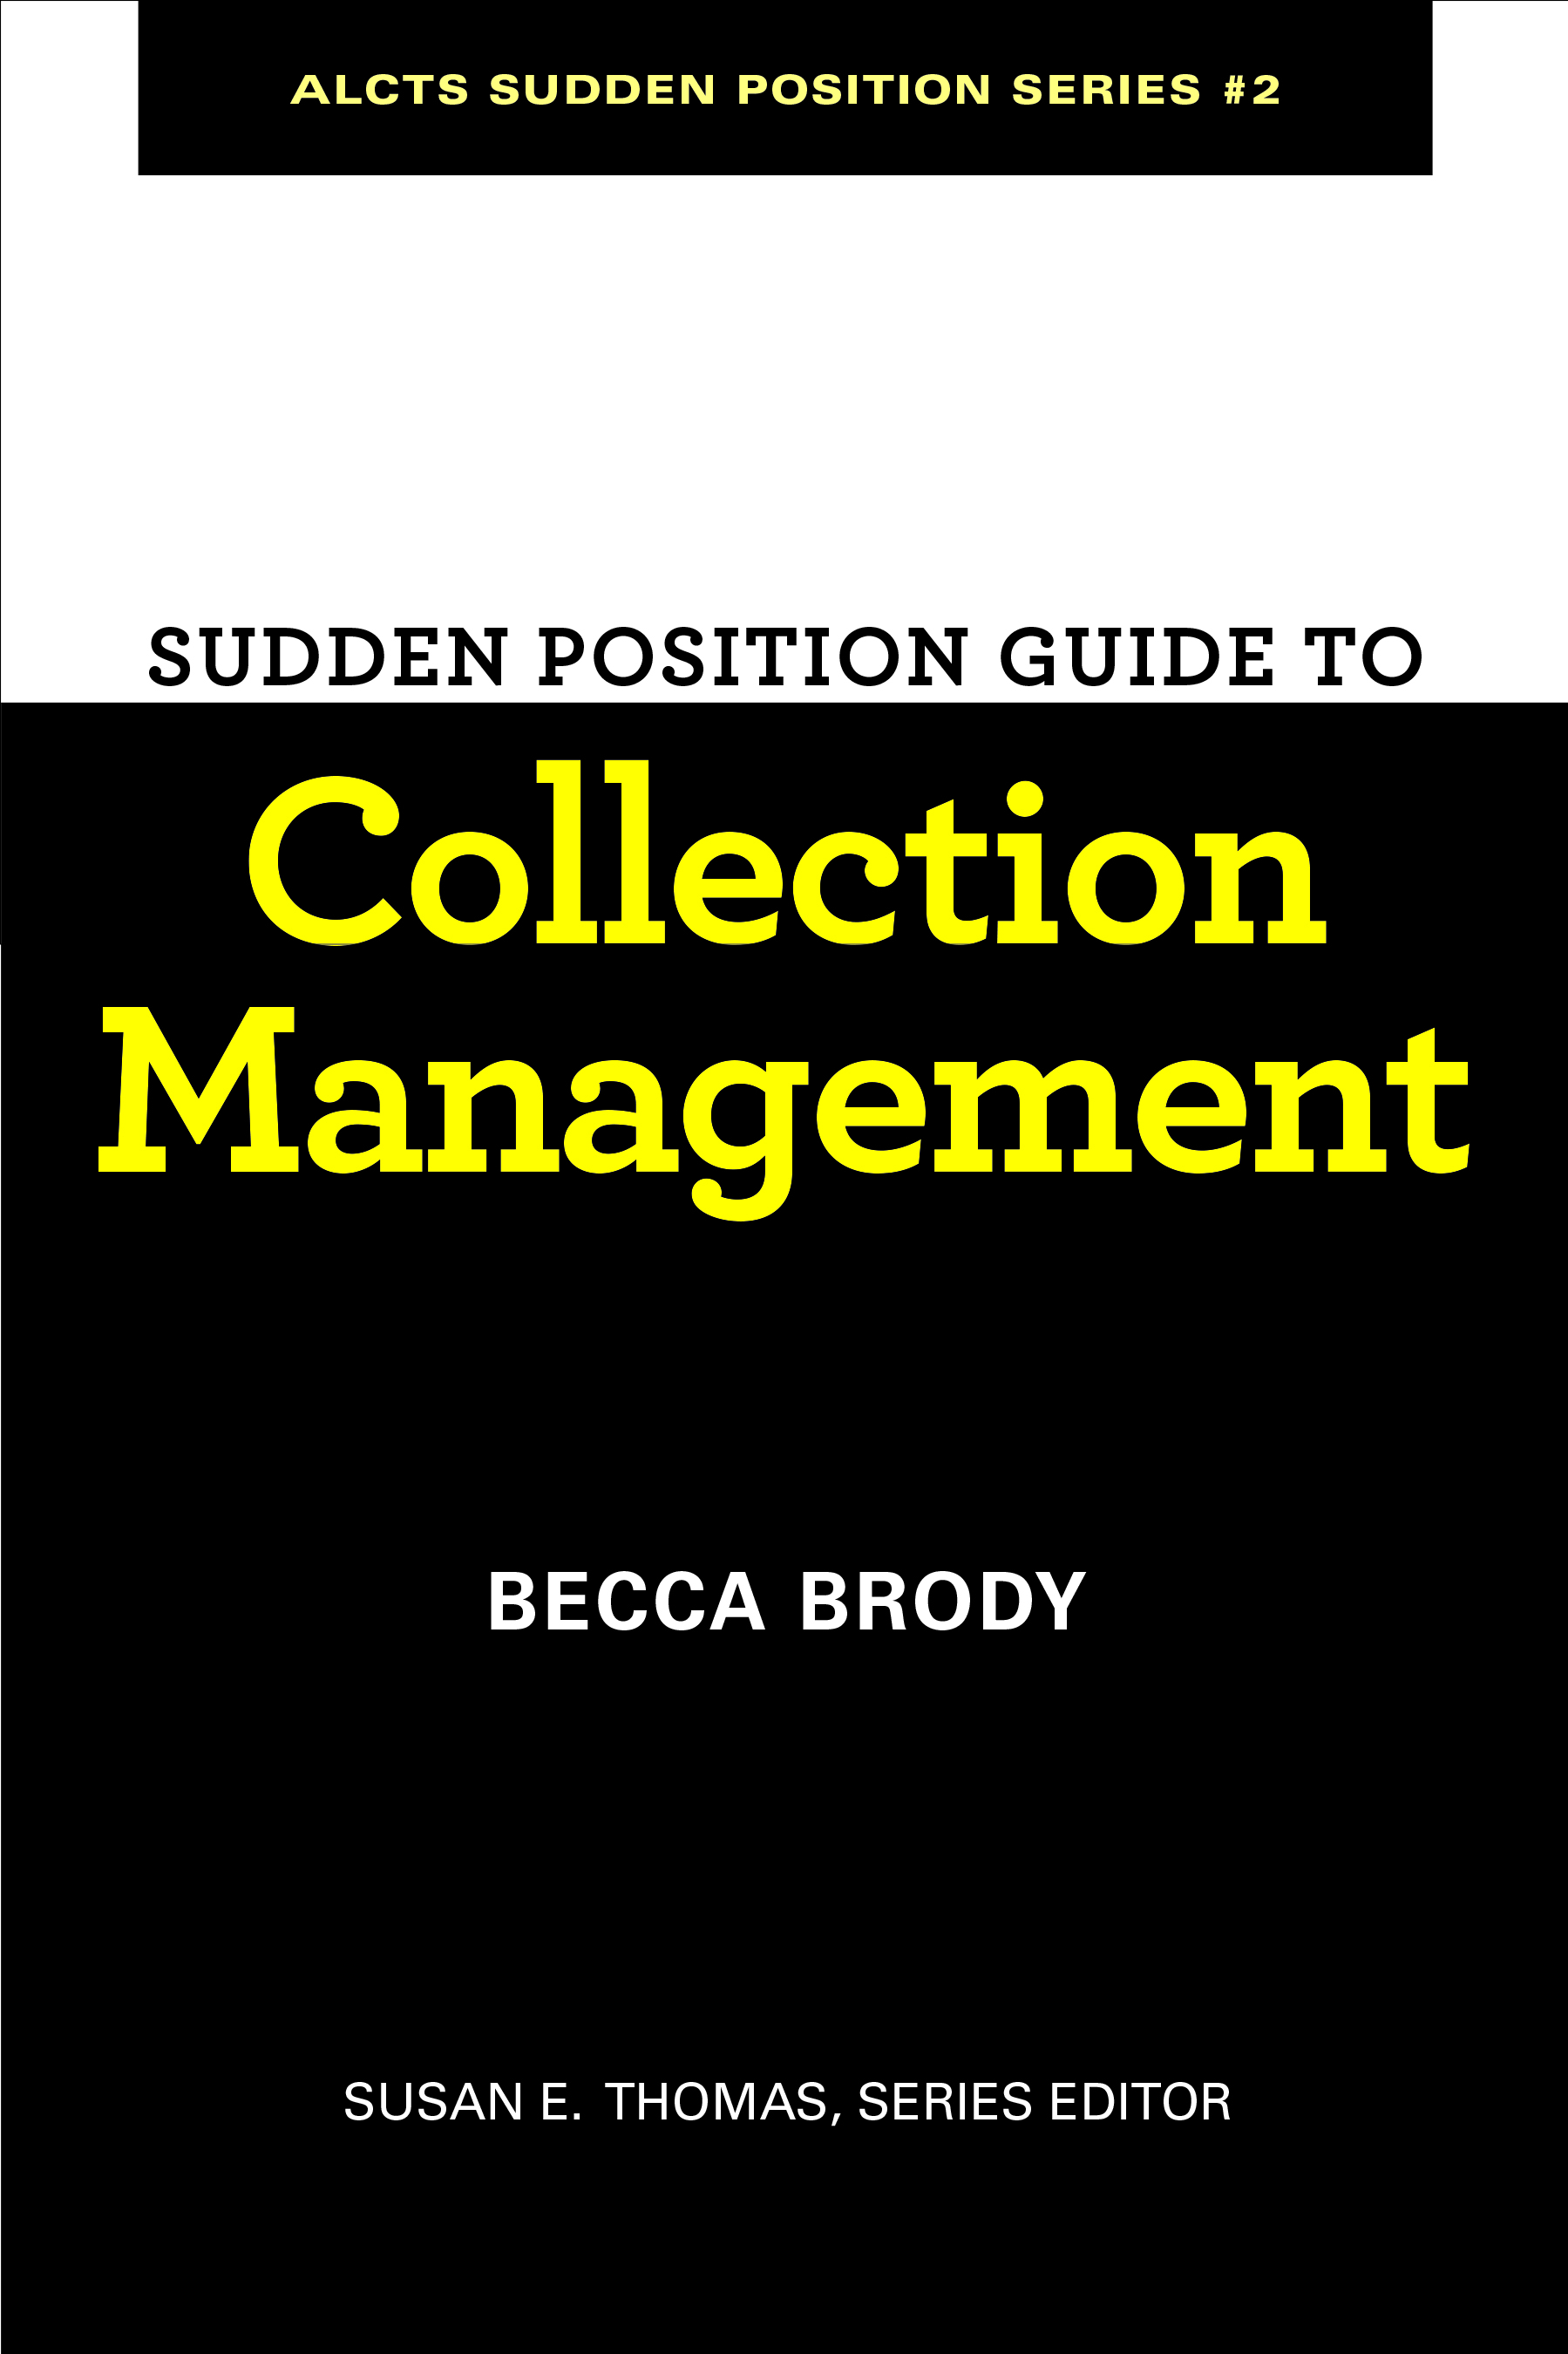 Sudden Position Guide to Collection Management